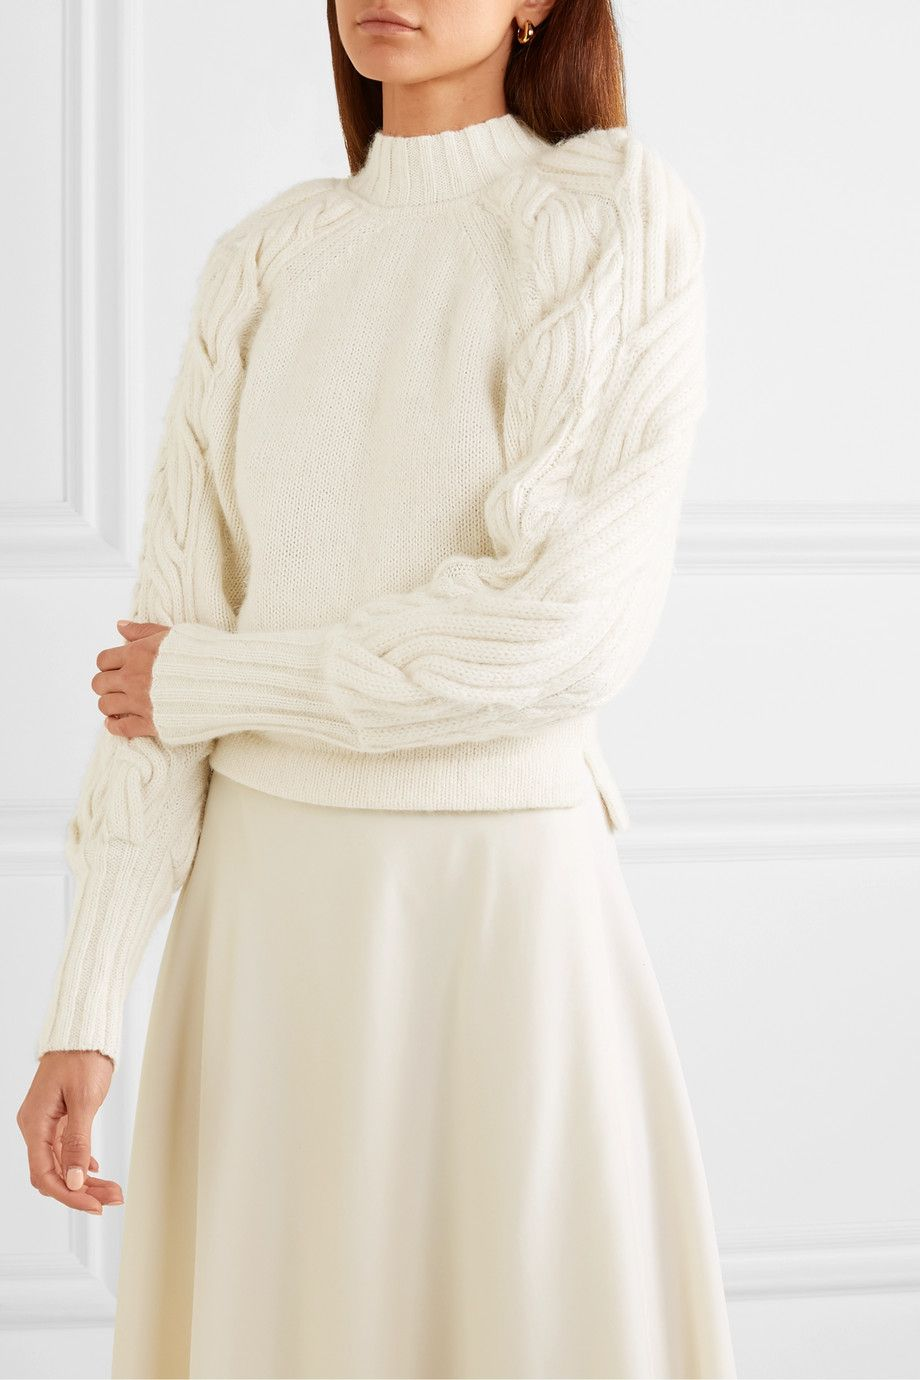 Net-a-Porter's Clearance Sale Is Up to 80% Off—Here's Everything We're Buying, Wustoo